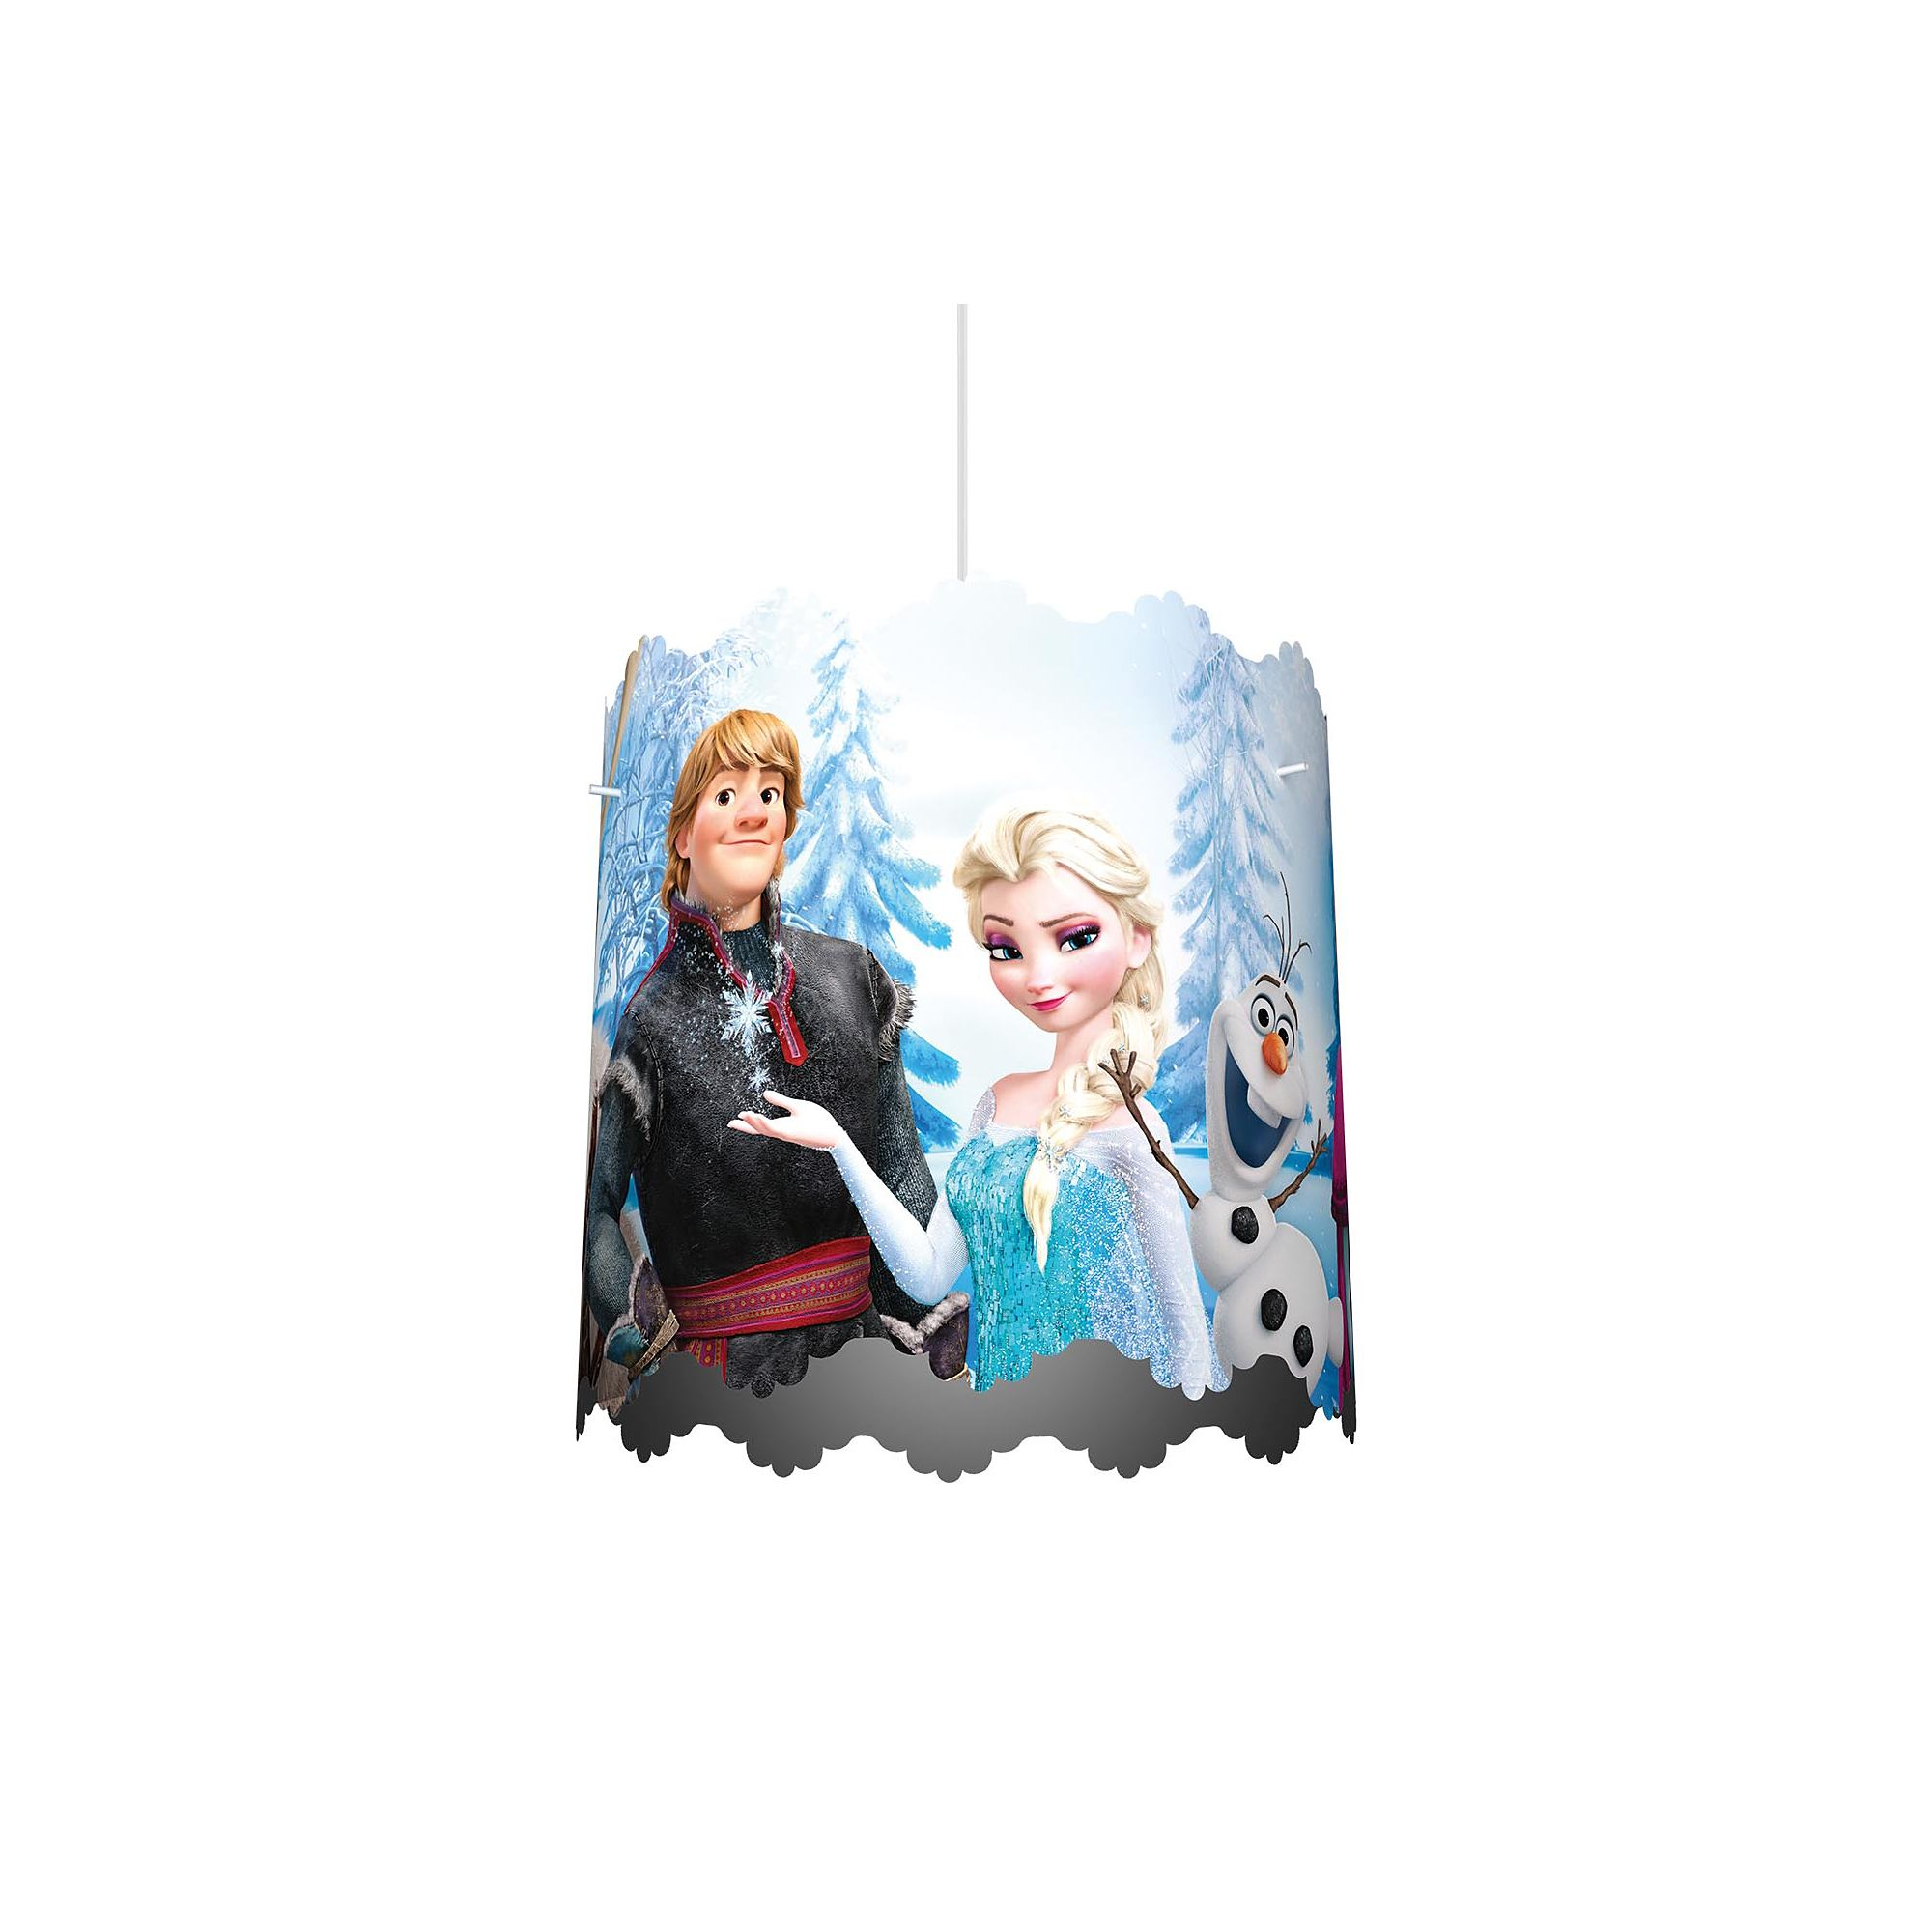 Marvel Avengers ceiling light shade (lamp shade only) Thumbnail 4